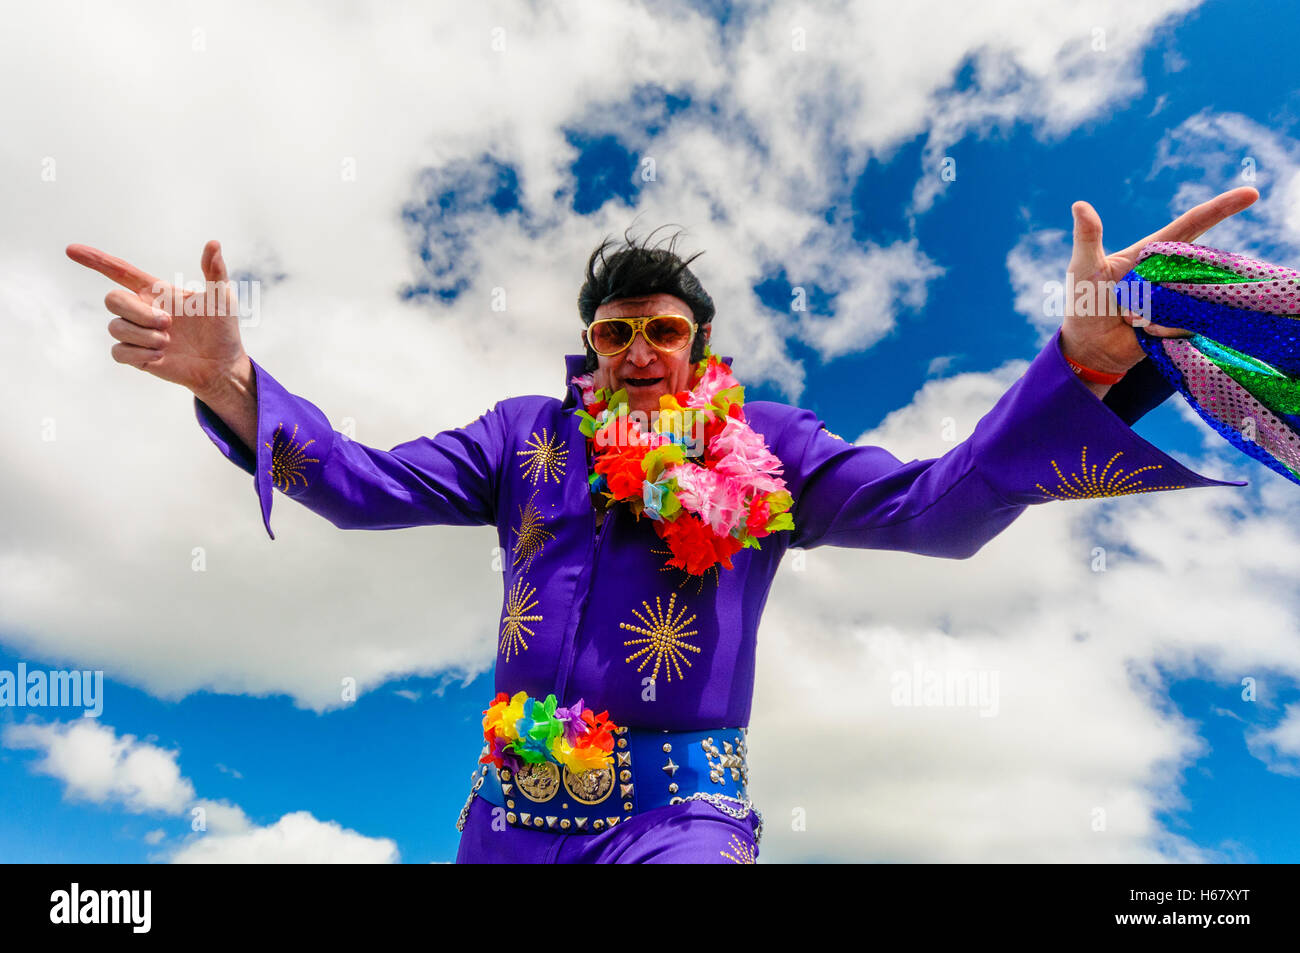 Elvis impersonator wearing a purple jumpsuit, sunglasses and a garland of flowers - Stock Image